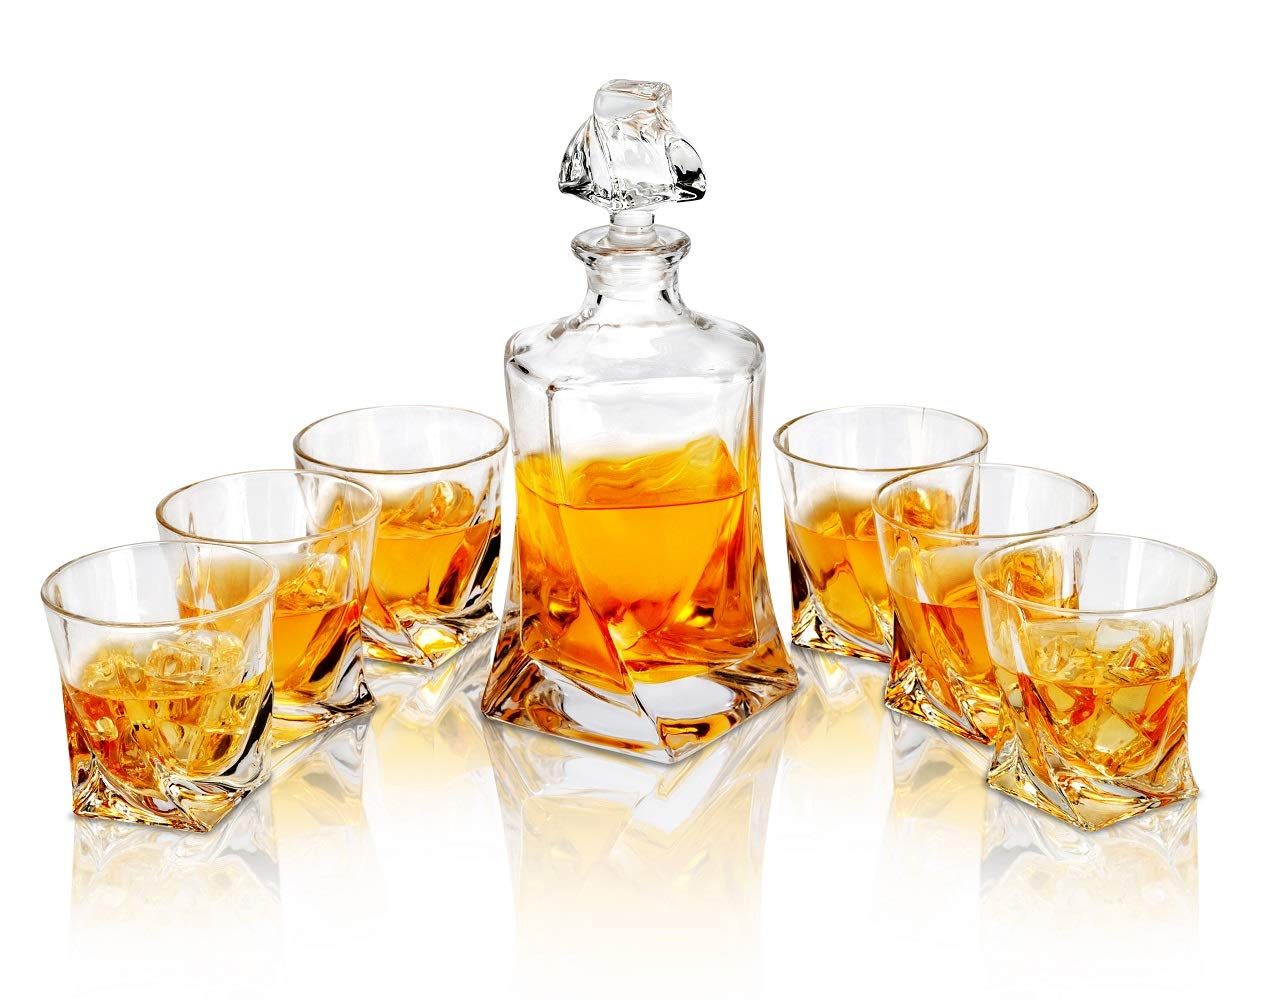 Whiskey Decanter And Glasses Set, Premium Liquor Decanter Comes with 6 Matching Scotch Glasses, Original European Style Crystal Decanter Set for Bourbon, Whisky and Alcohol, 7- Piece